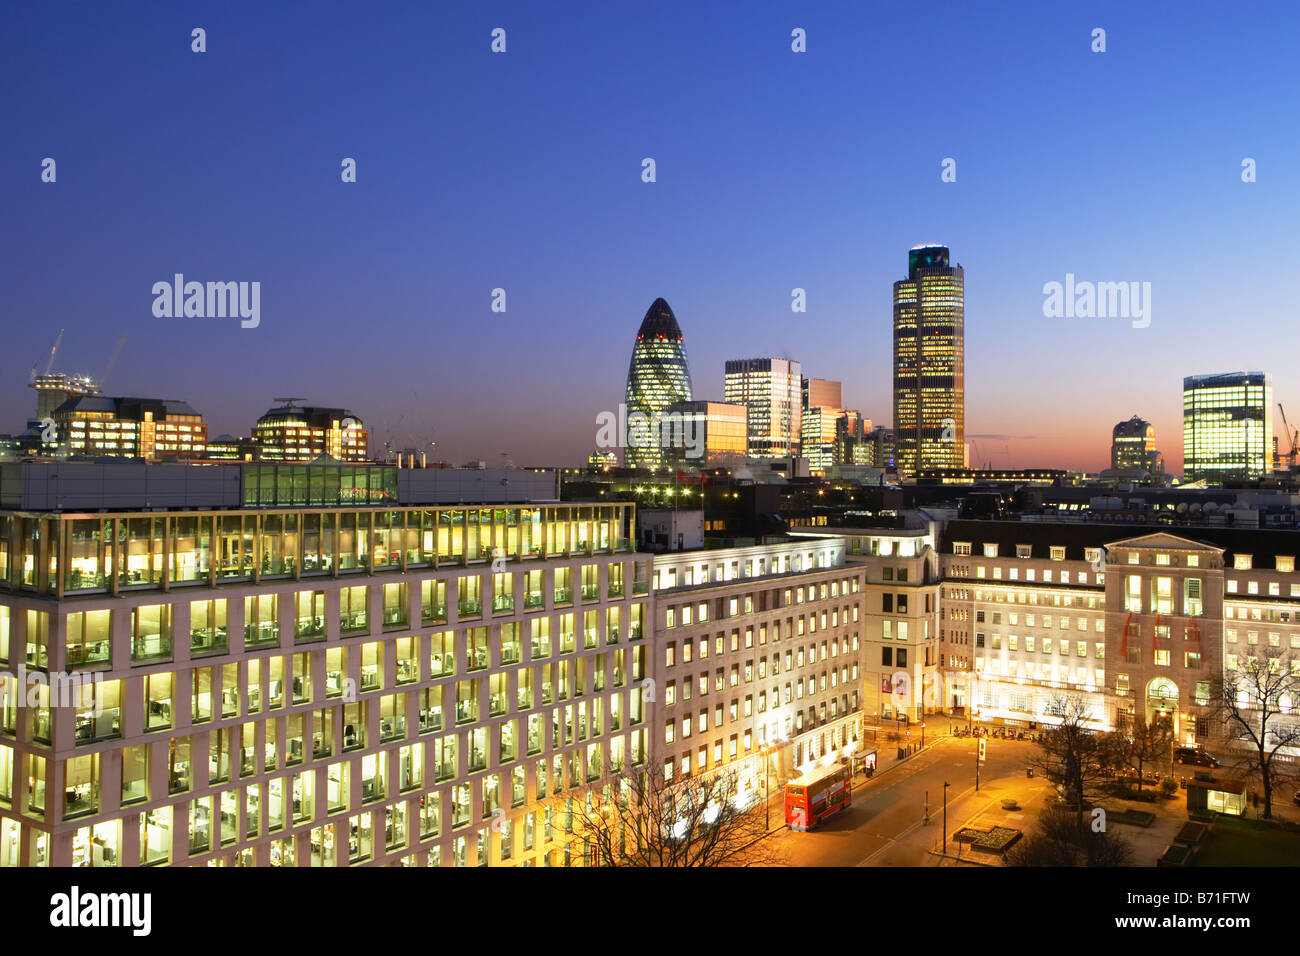 Night Shot de Nat West Tower pepinillo y horizonte de Londres Londres, Inglaterra Imagen De Stock